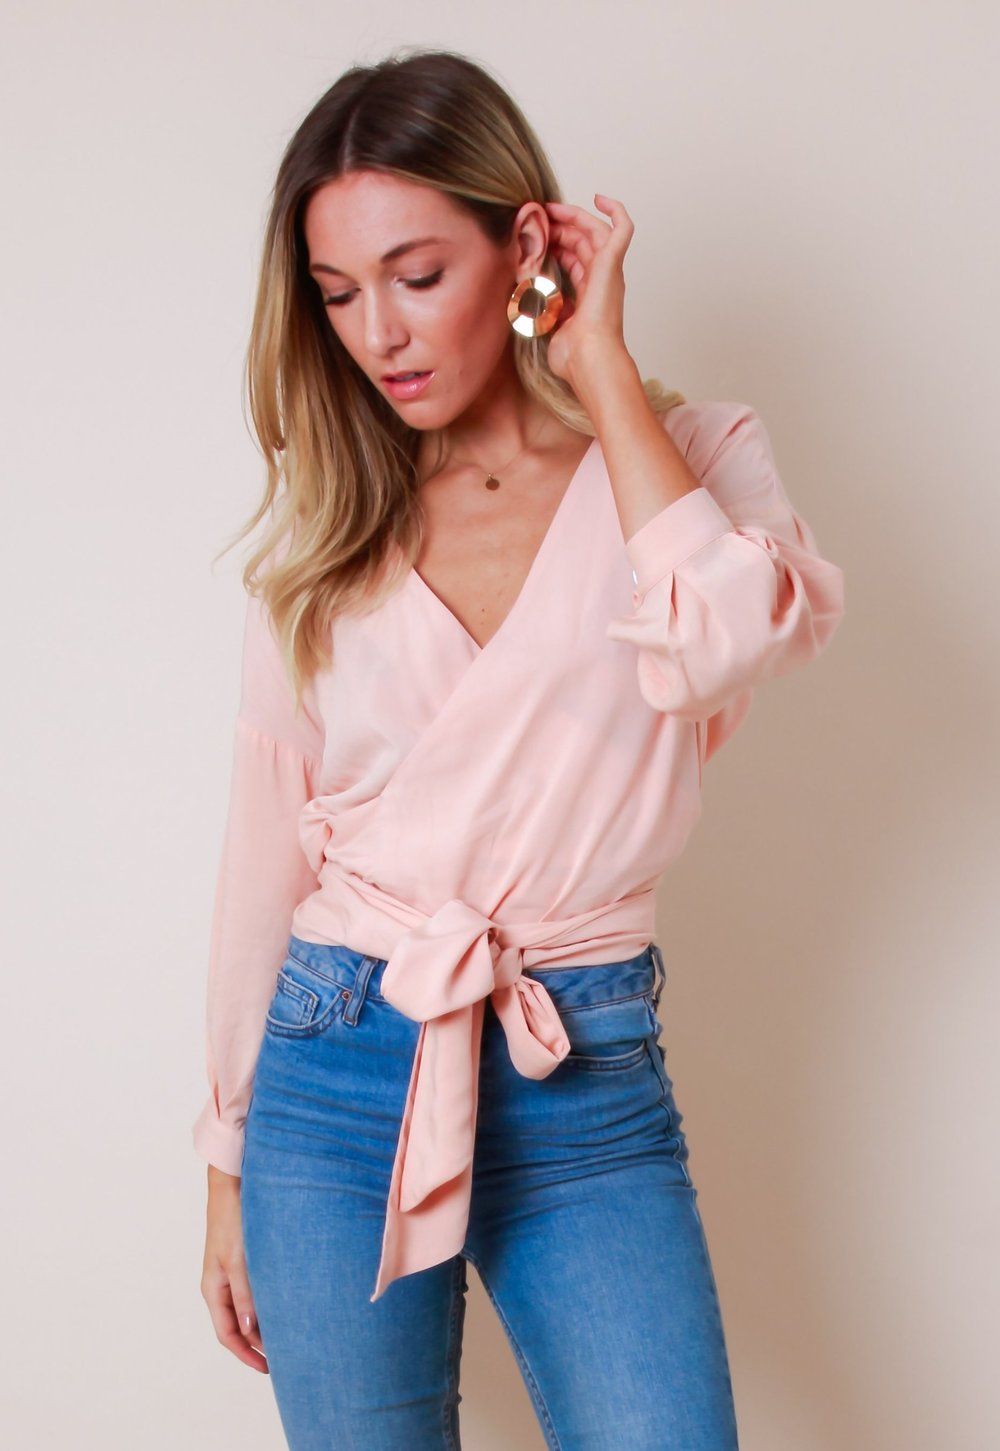 5. the blouse - PRETTY LAVISH: Wrap Tie Blouse, £38Too cold for a vest, too warm for a jumper; blouses are therefore your go-to formal piece. Wear with black skinny jeans and block heels for an easy dressed-up look.